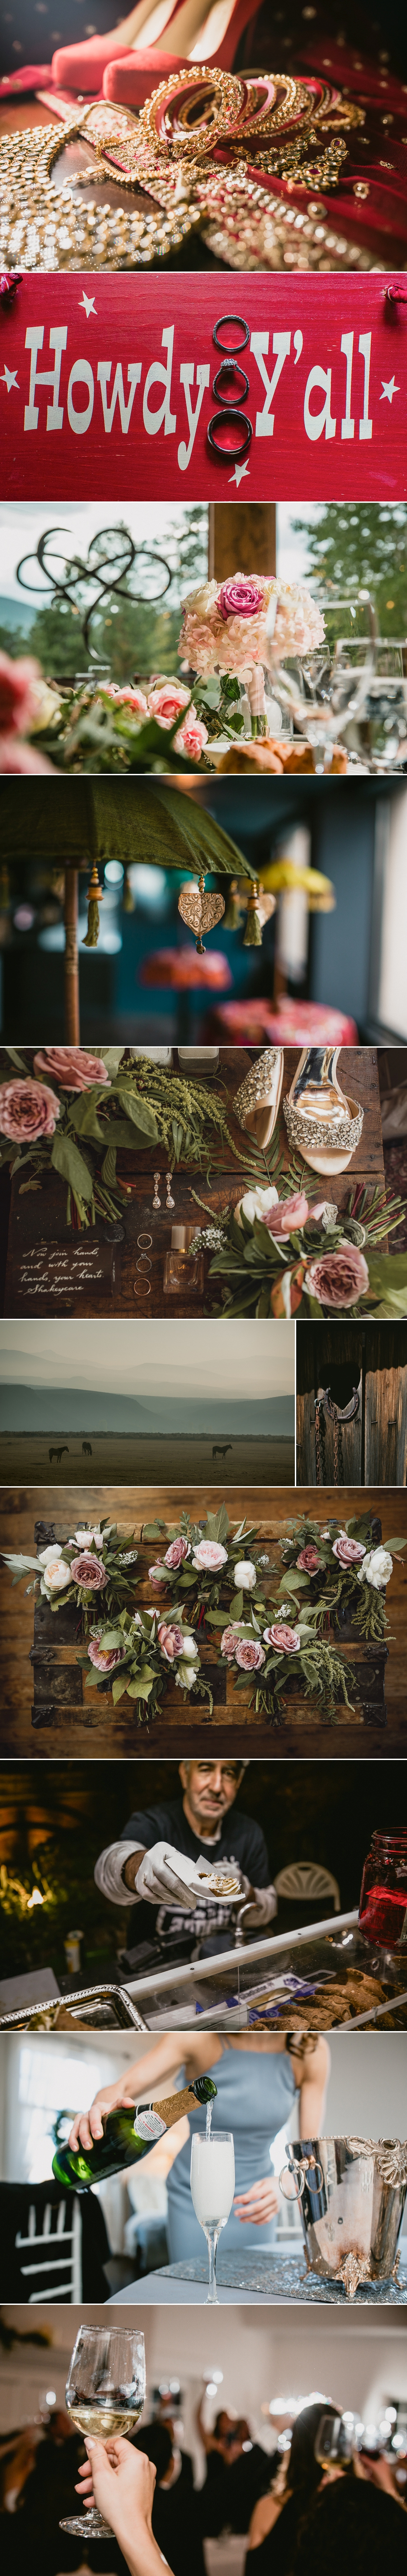 2019 Colorado Wedding details from MSW Photos.